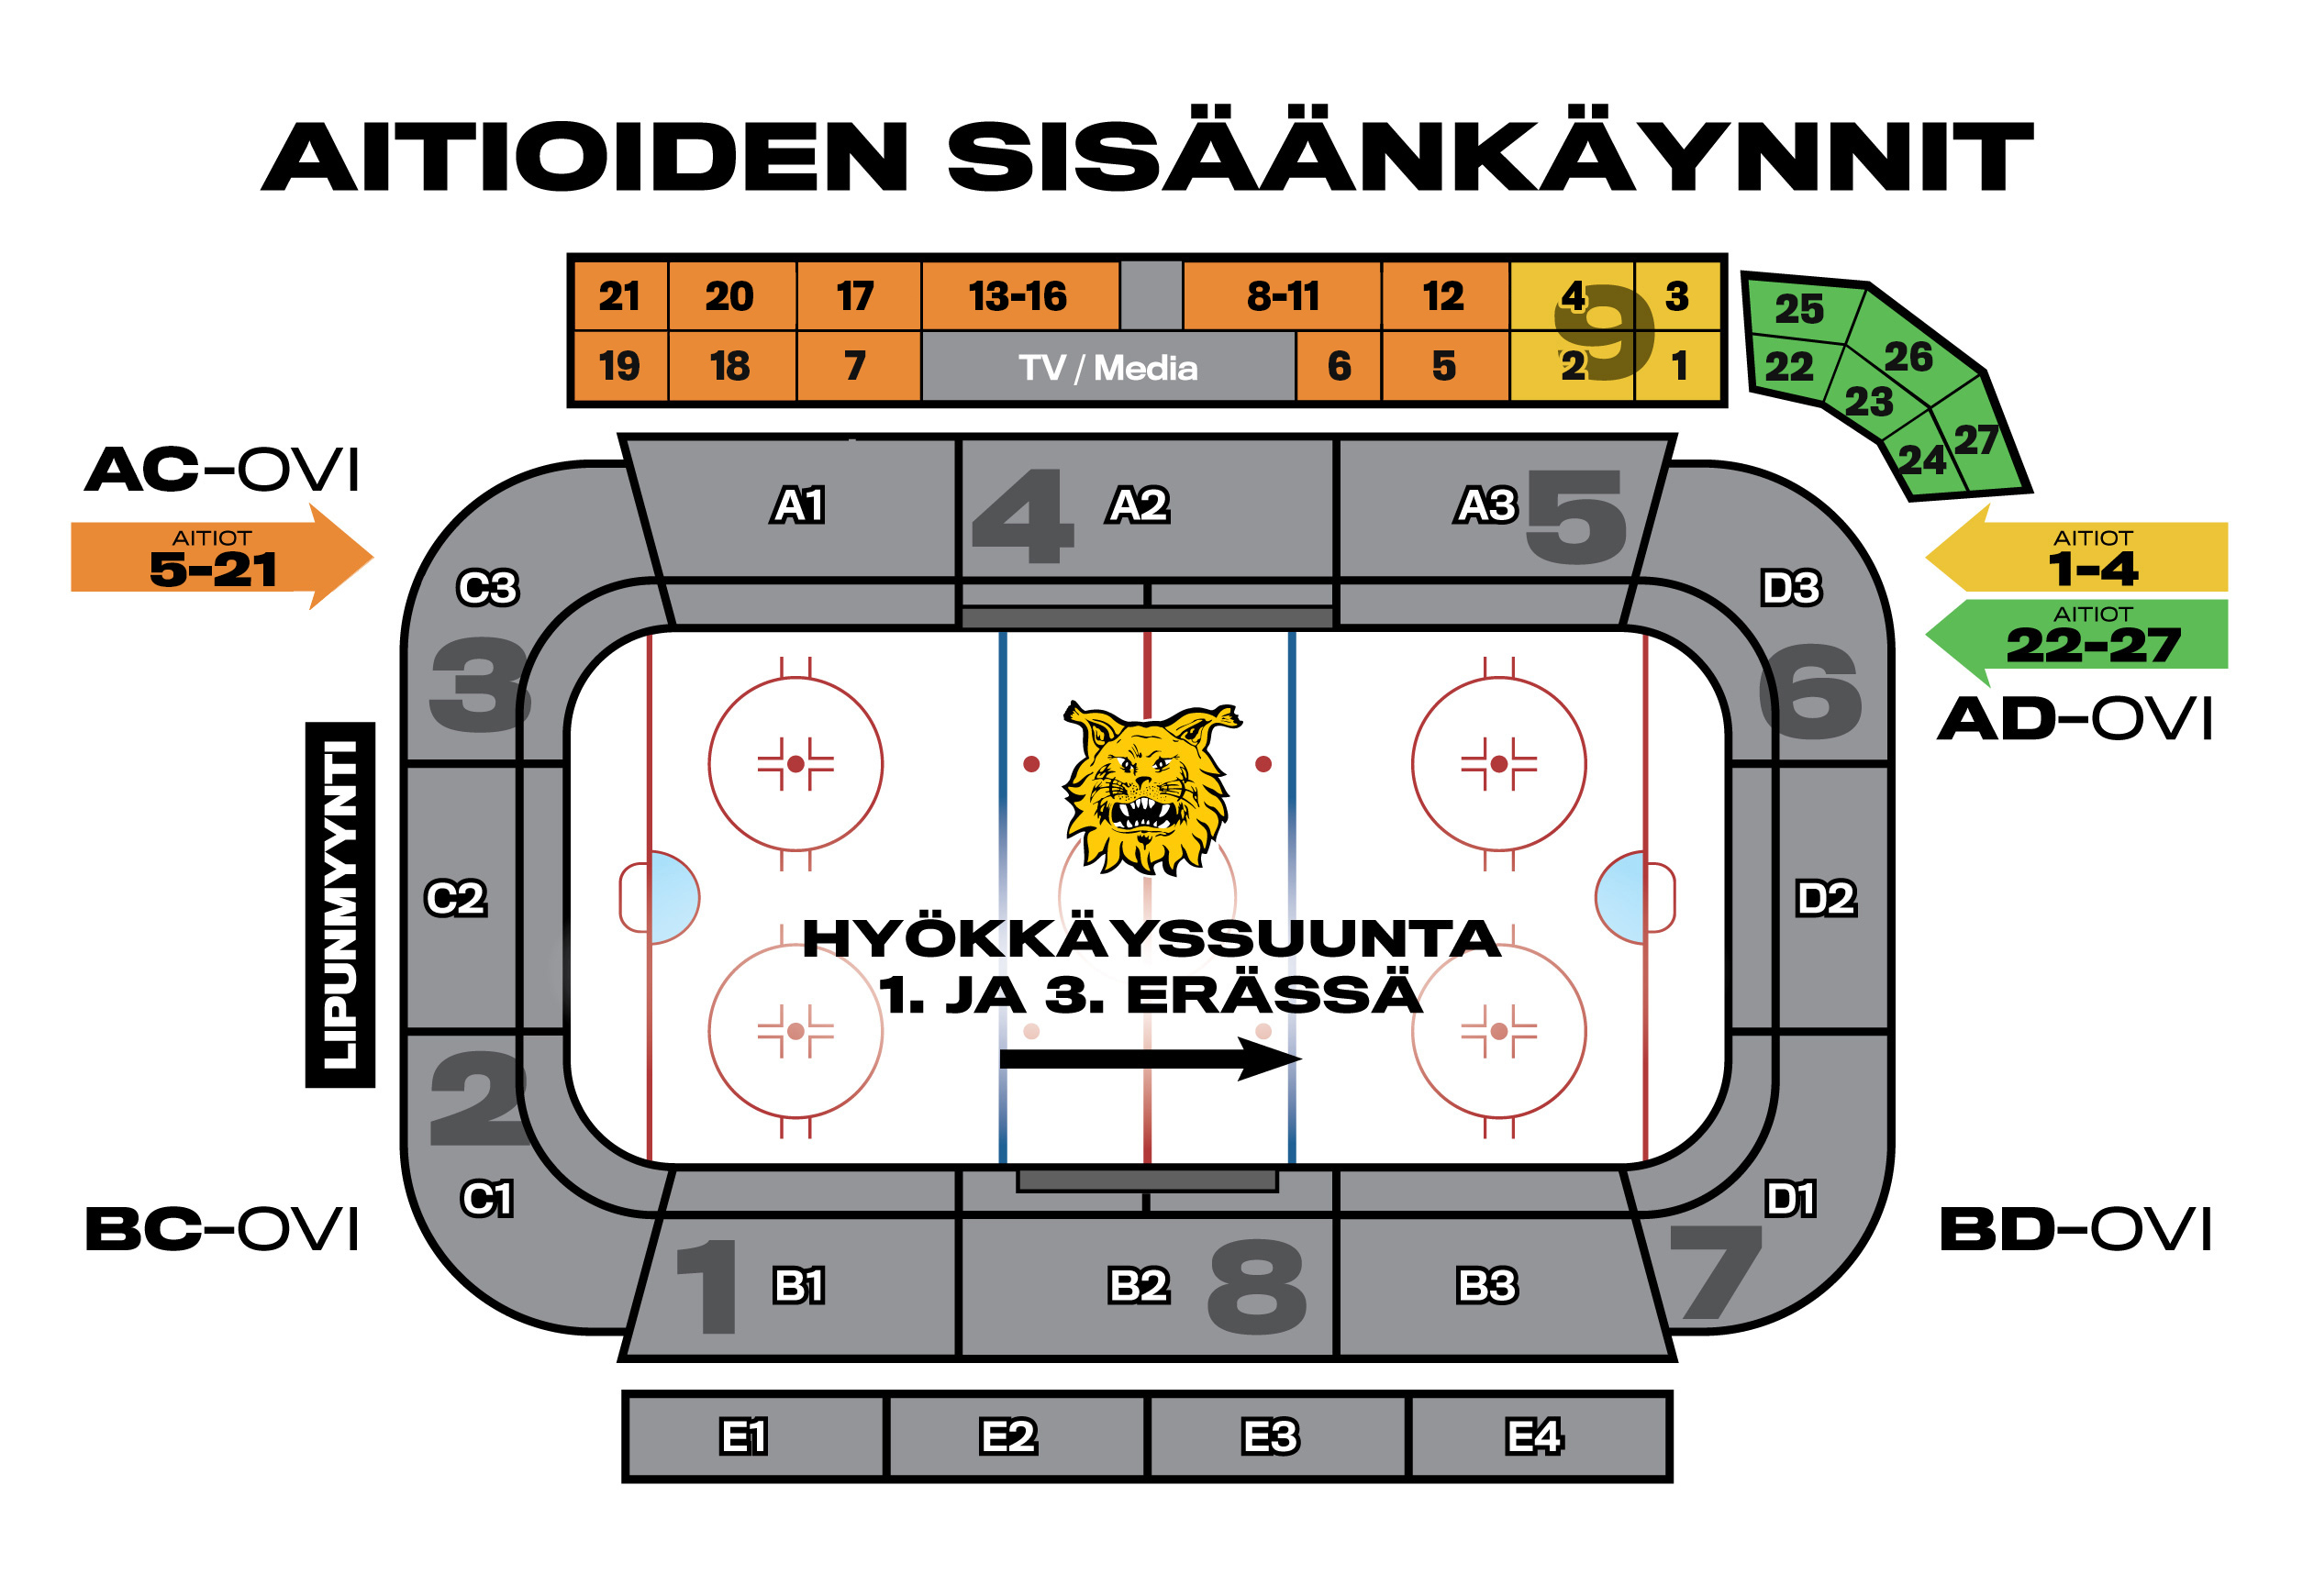 Tampereen Ilves - Aitiot